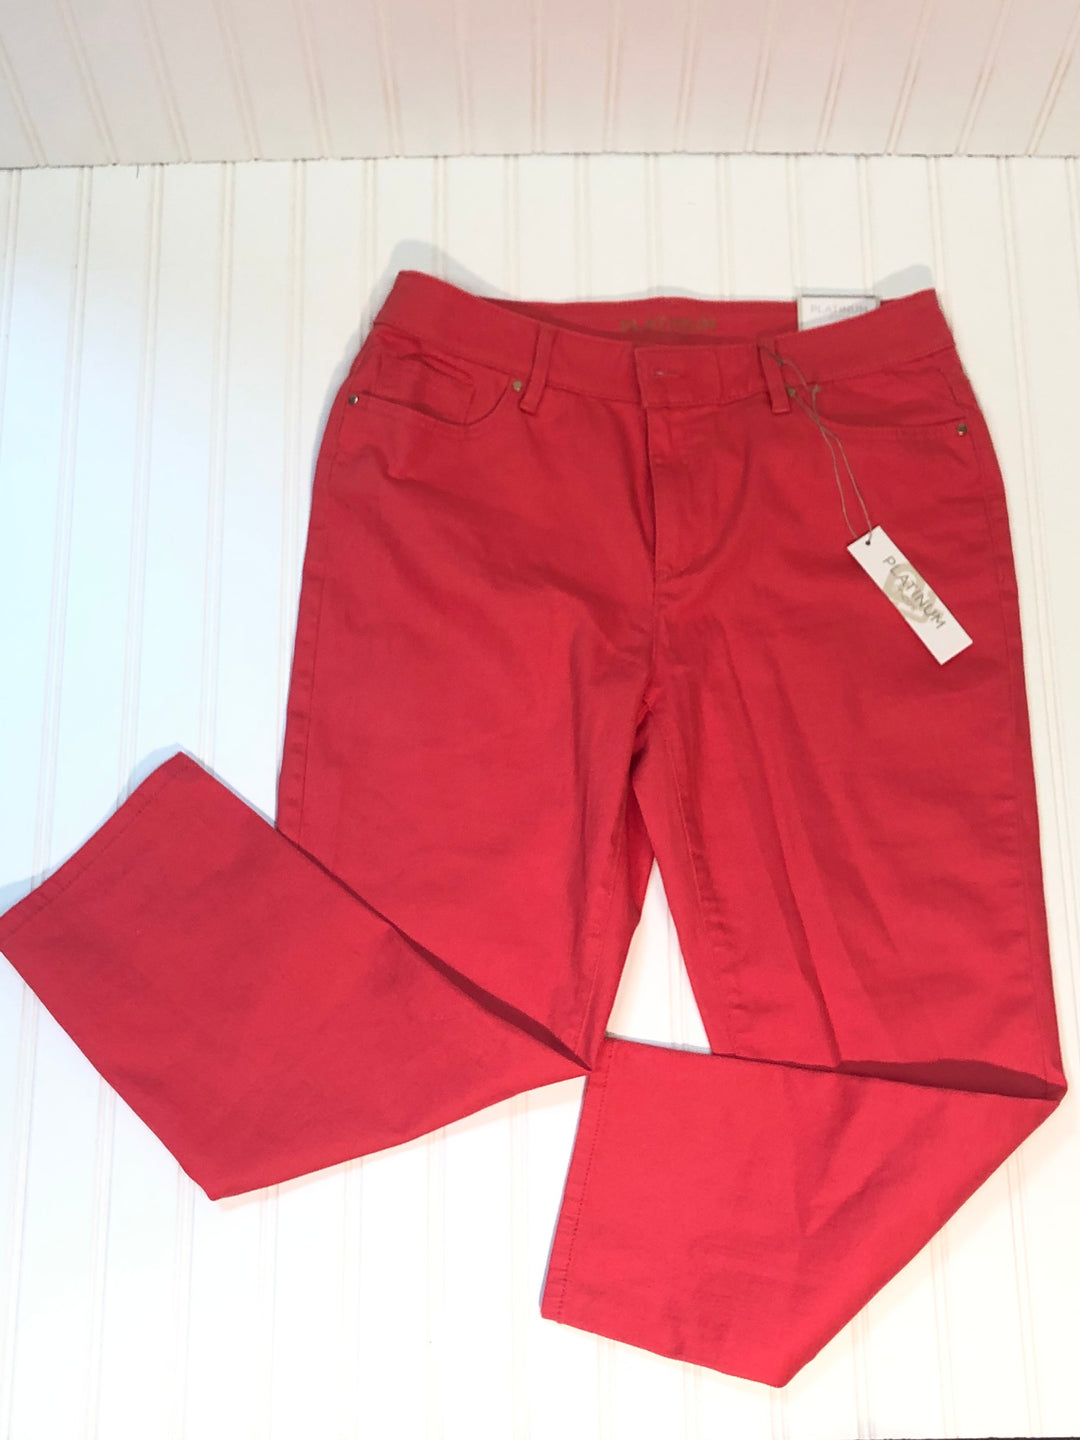 Primary Photo - BRAND: CHICOS <BR>STYLE: PANTS <BR>COLOR: CORAL<BR>SIZE: S <BR>SKU: 239-23918-33947<BR>CROP SIZE 0.5